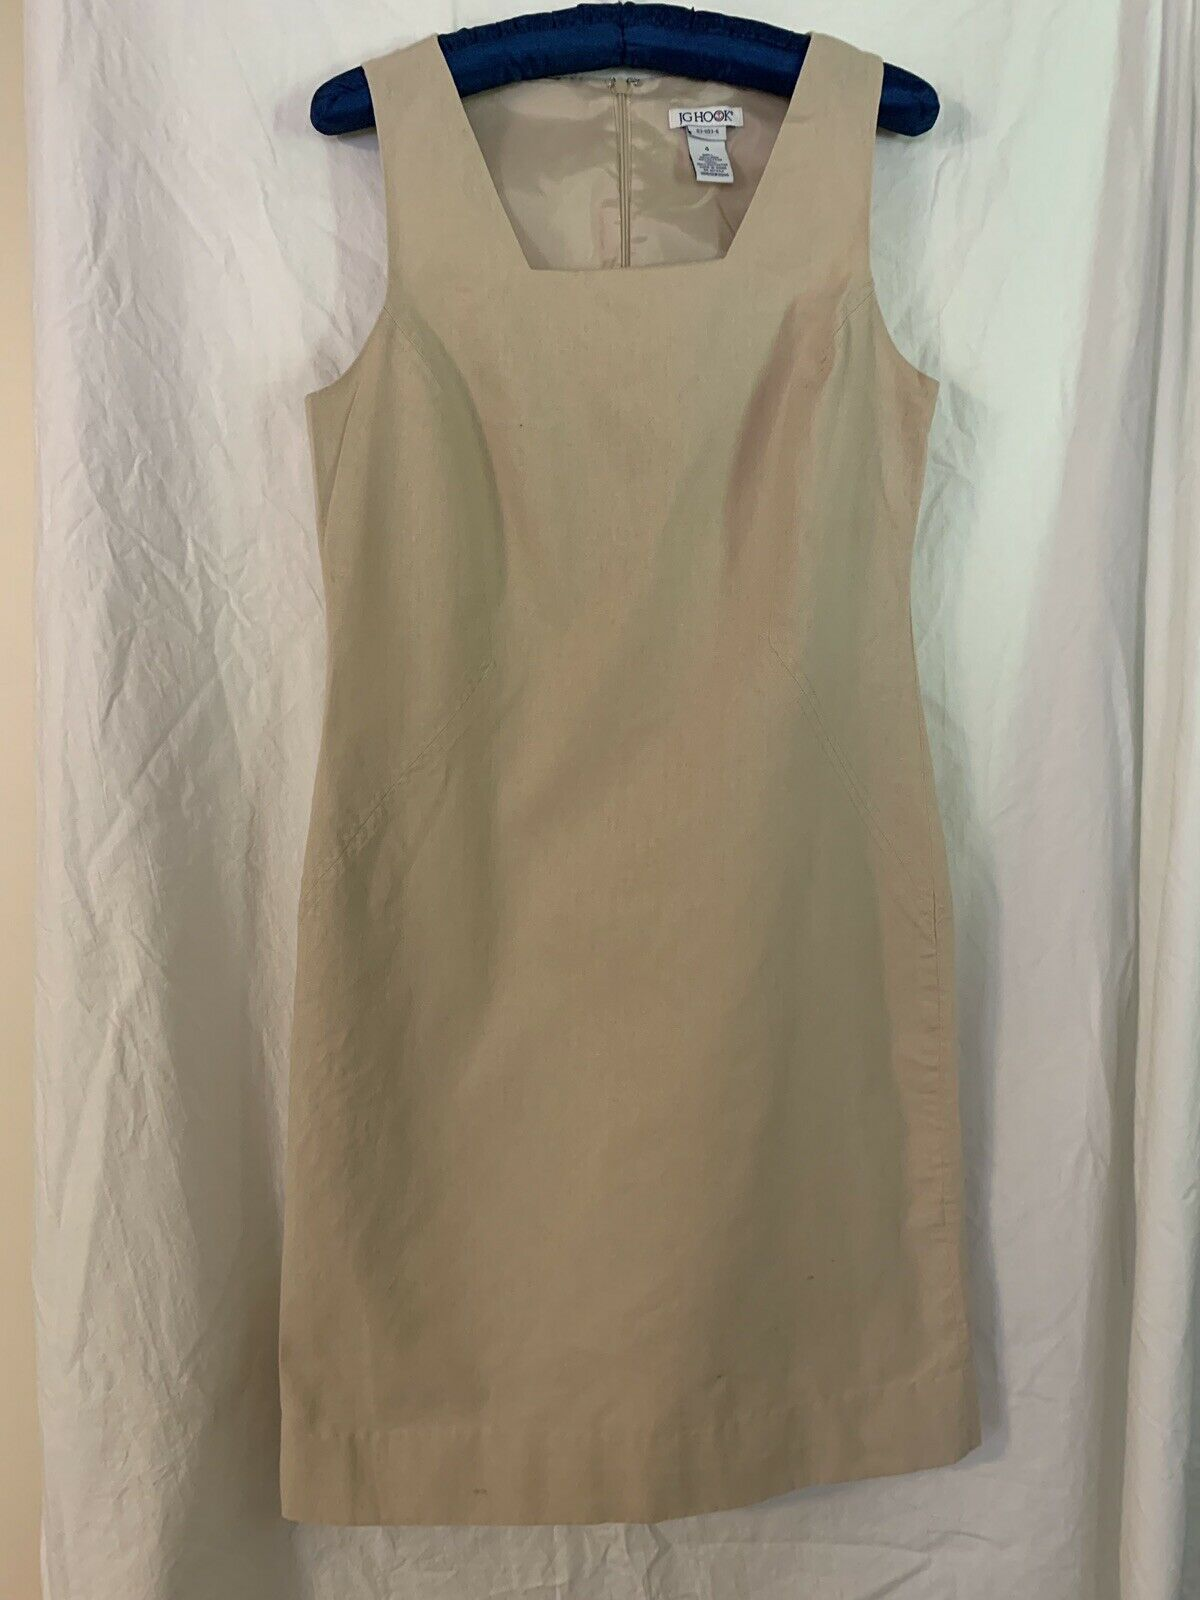 JG HOOK Womans Beige Linen Square Neck Sleeveless Knee Length Sheath Dress Sz 4